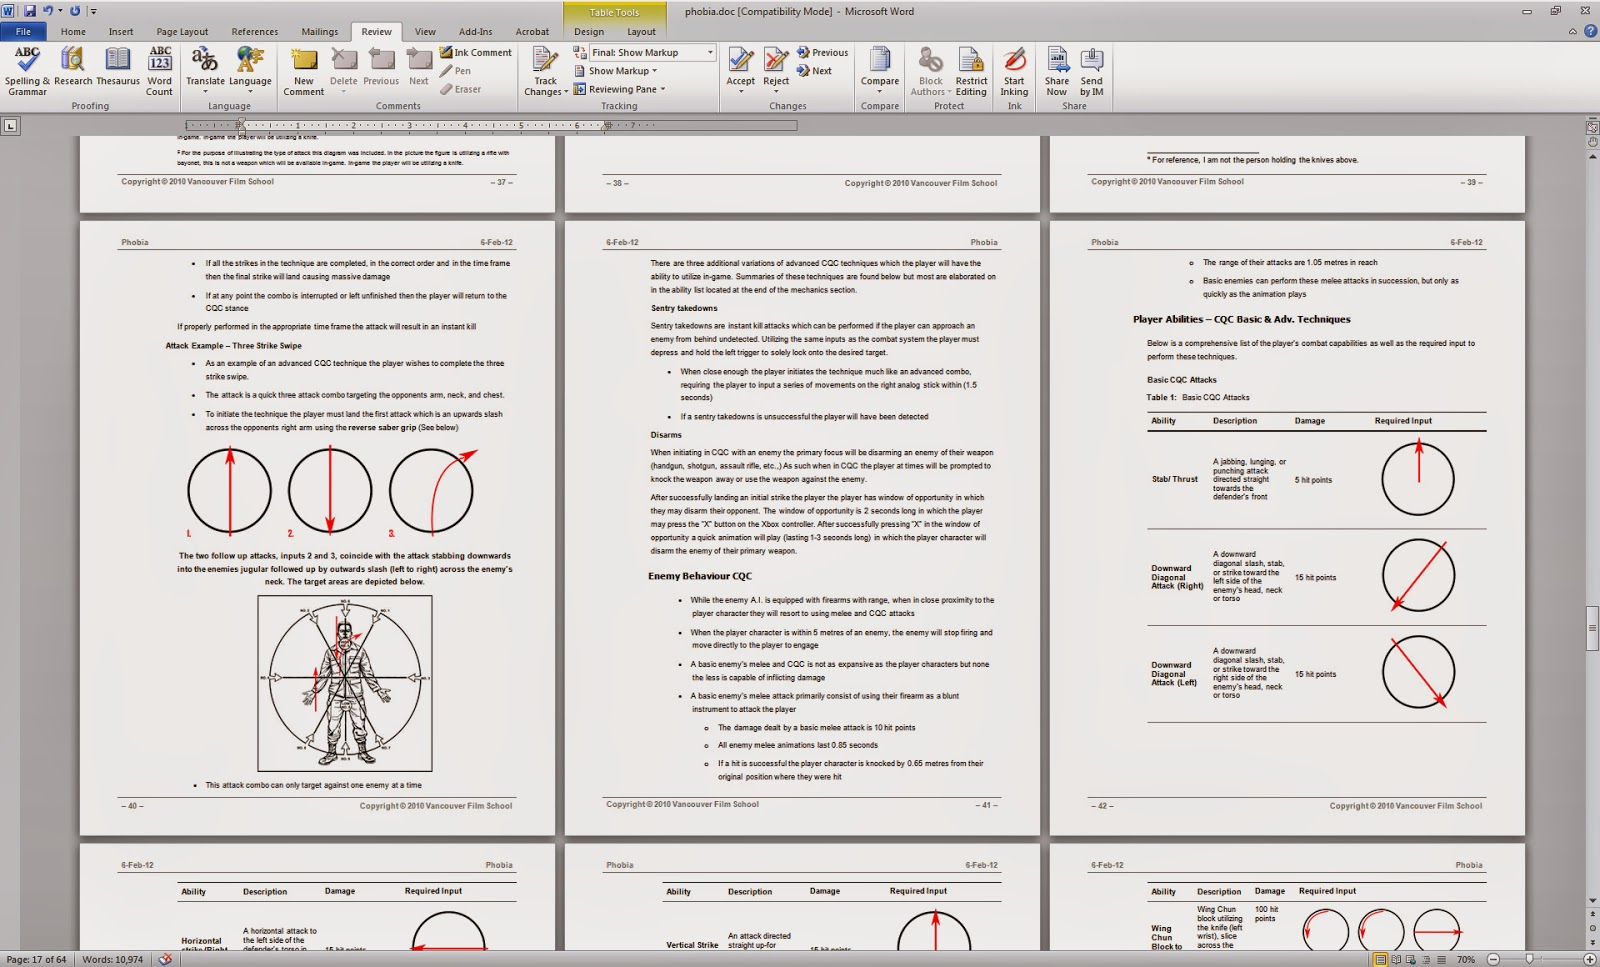 FND Jane Research GDD Game Design Document - Gdd game design document example